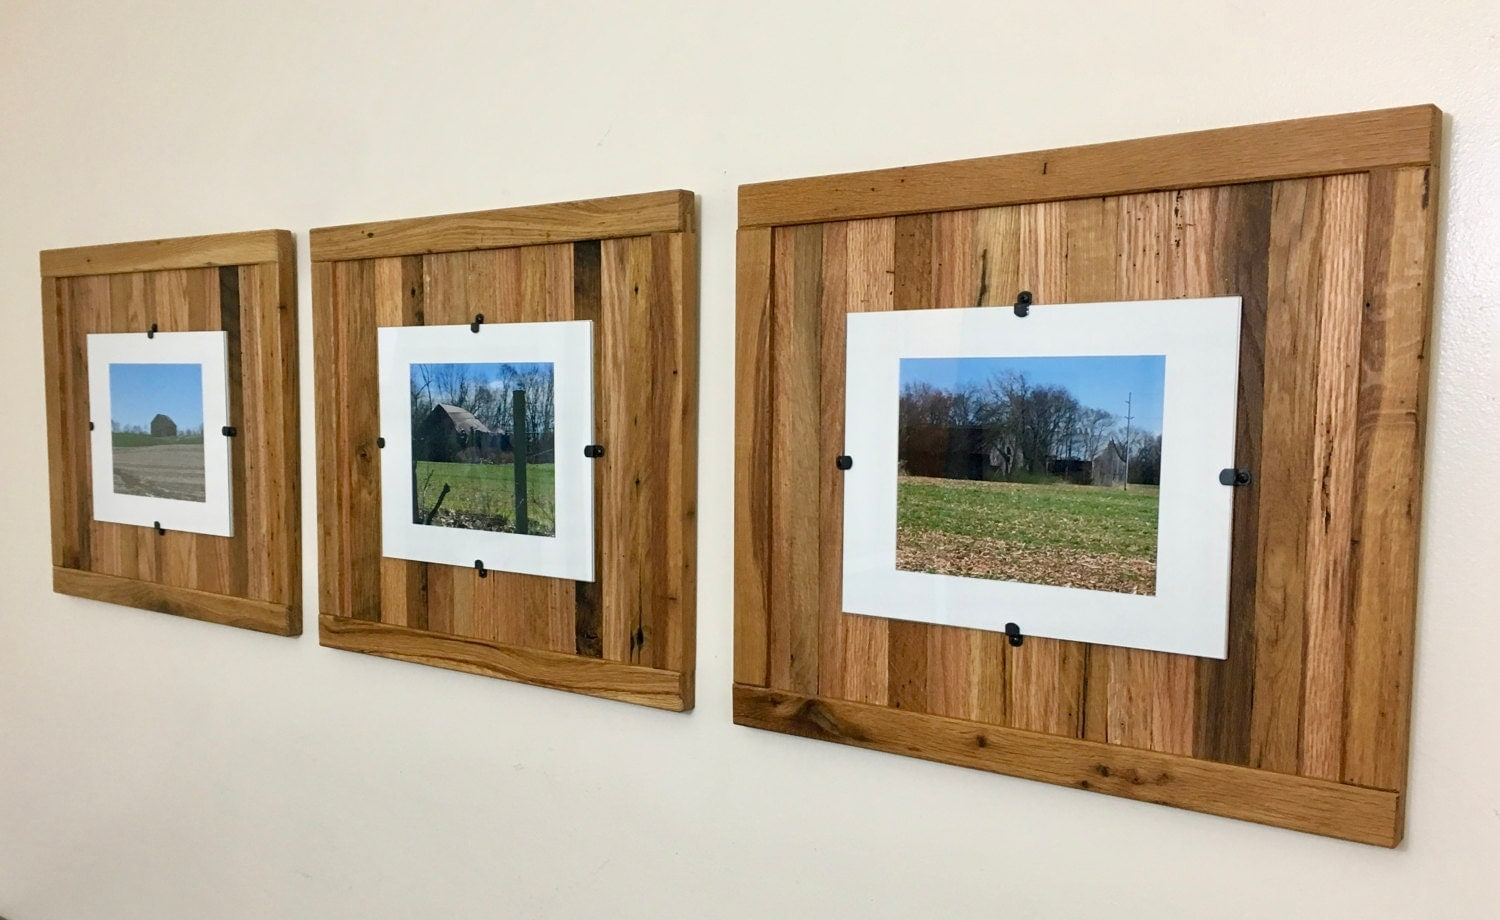 rustic wood frames reclaimed wood frame set of 3 8 x 10 picture frame with mat 11 x 14 picture frame without mat free shipping - Wood Picture Frame Set